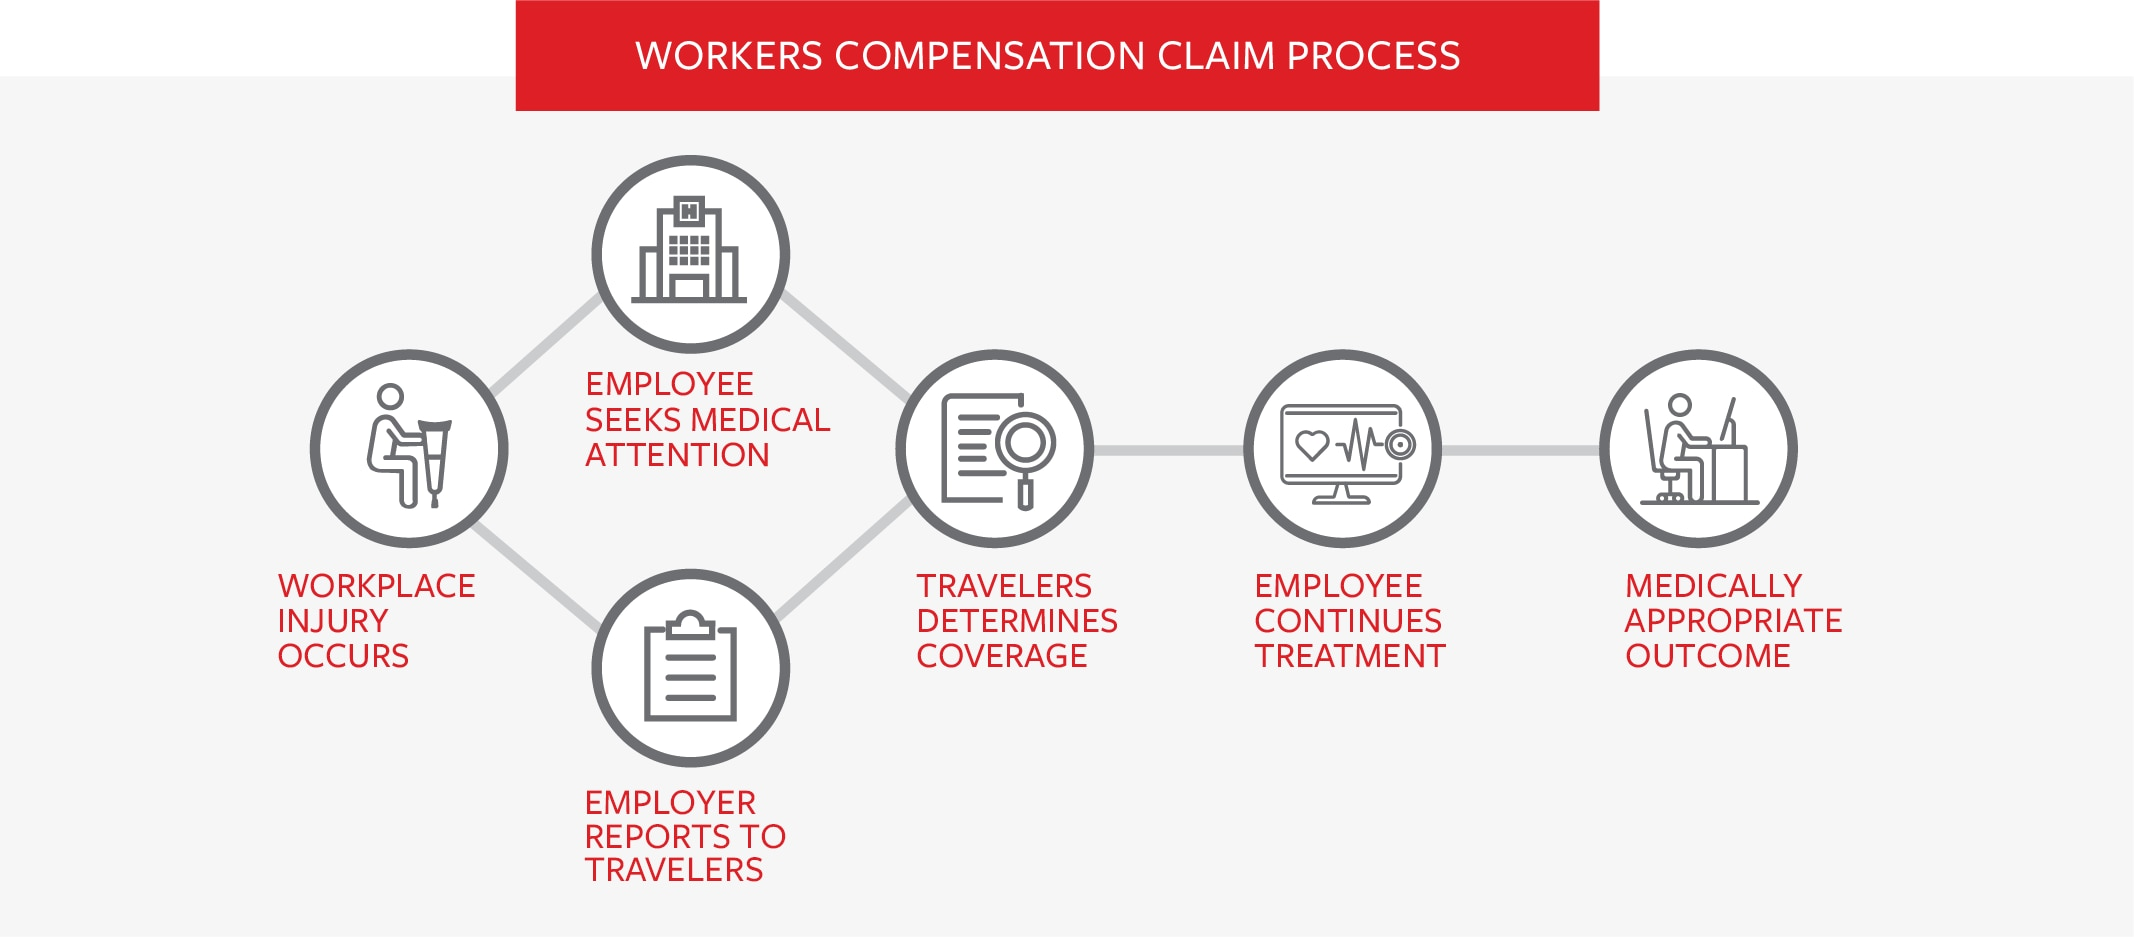 Workers Compensation claim process steps